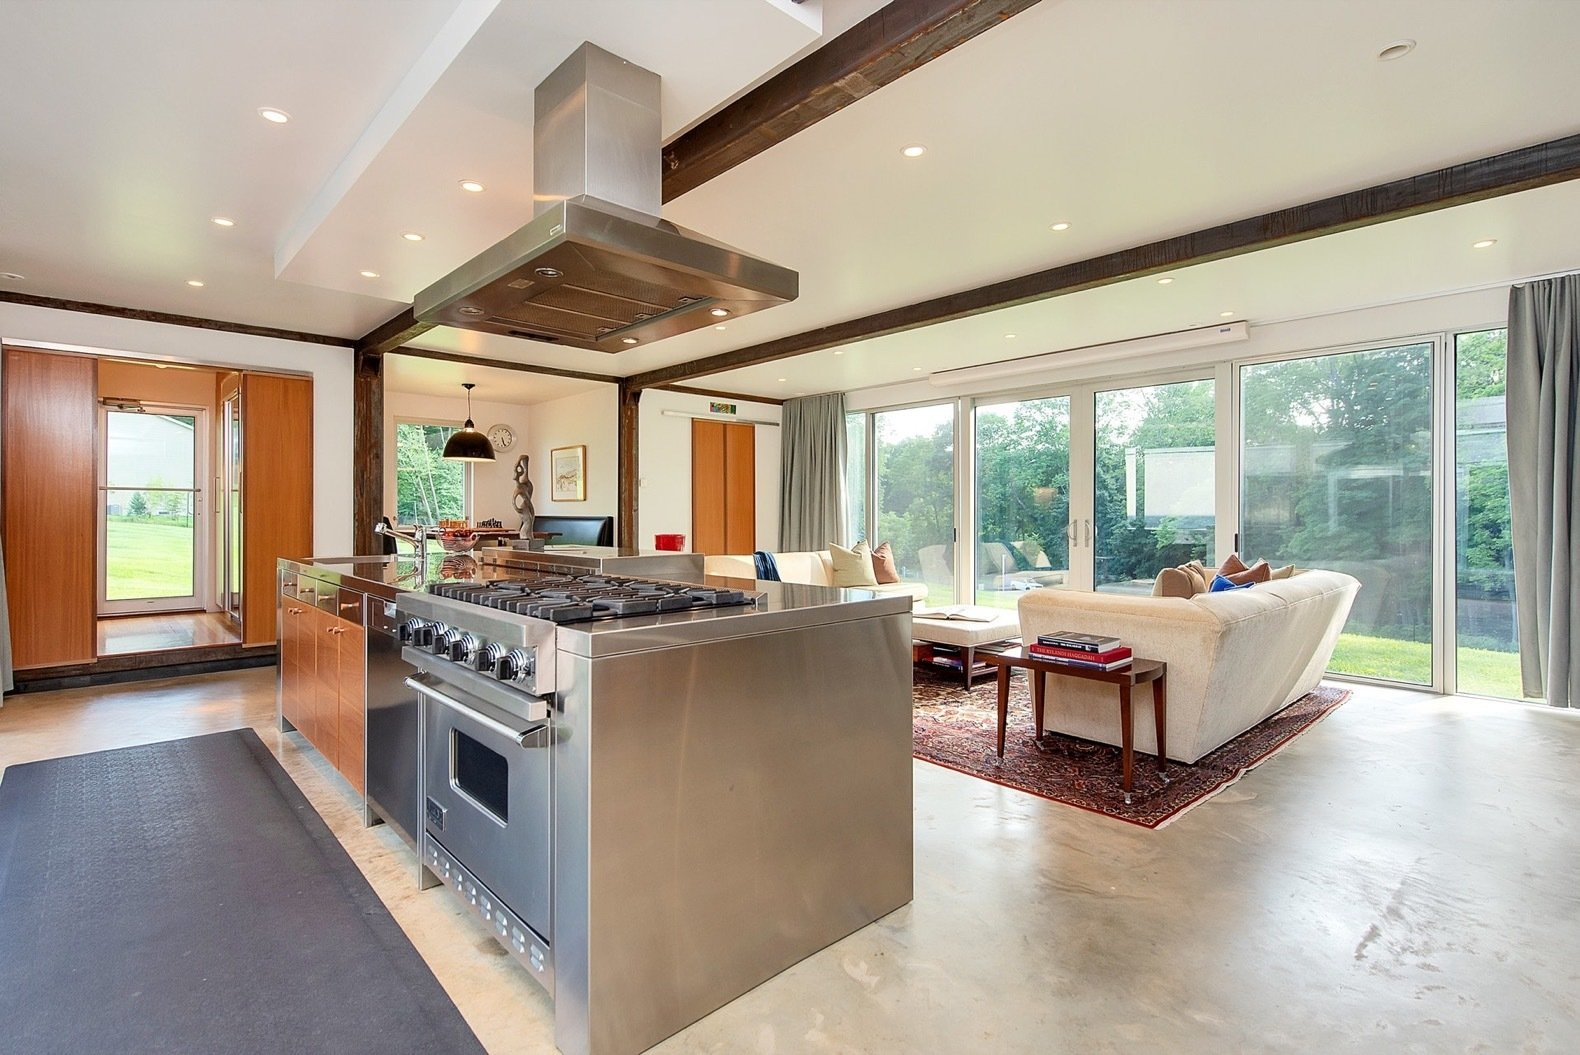 Kitchen, Concrete Floor, Metal Counter, Range Hood, Wall Oven, Cooktops, Range, Wood Cabinet, and Recessed Lighting The 12-foot-long kitchen island is fitted with a Miele dishwasher, a Viking range, and custom wooden cabinets.    Photo 4 of 14 in Grab This Dreamy Shipping Container Home For $875K